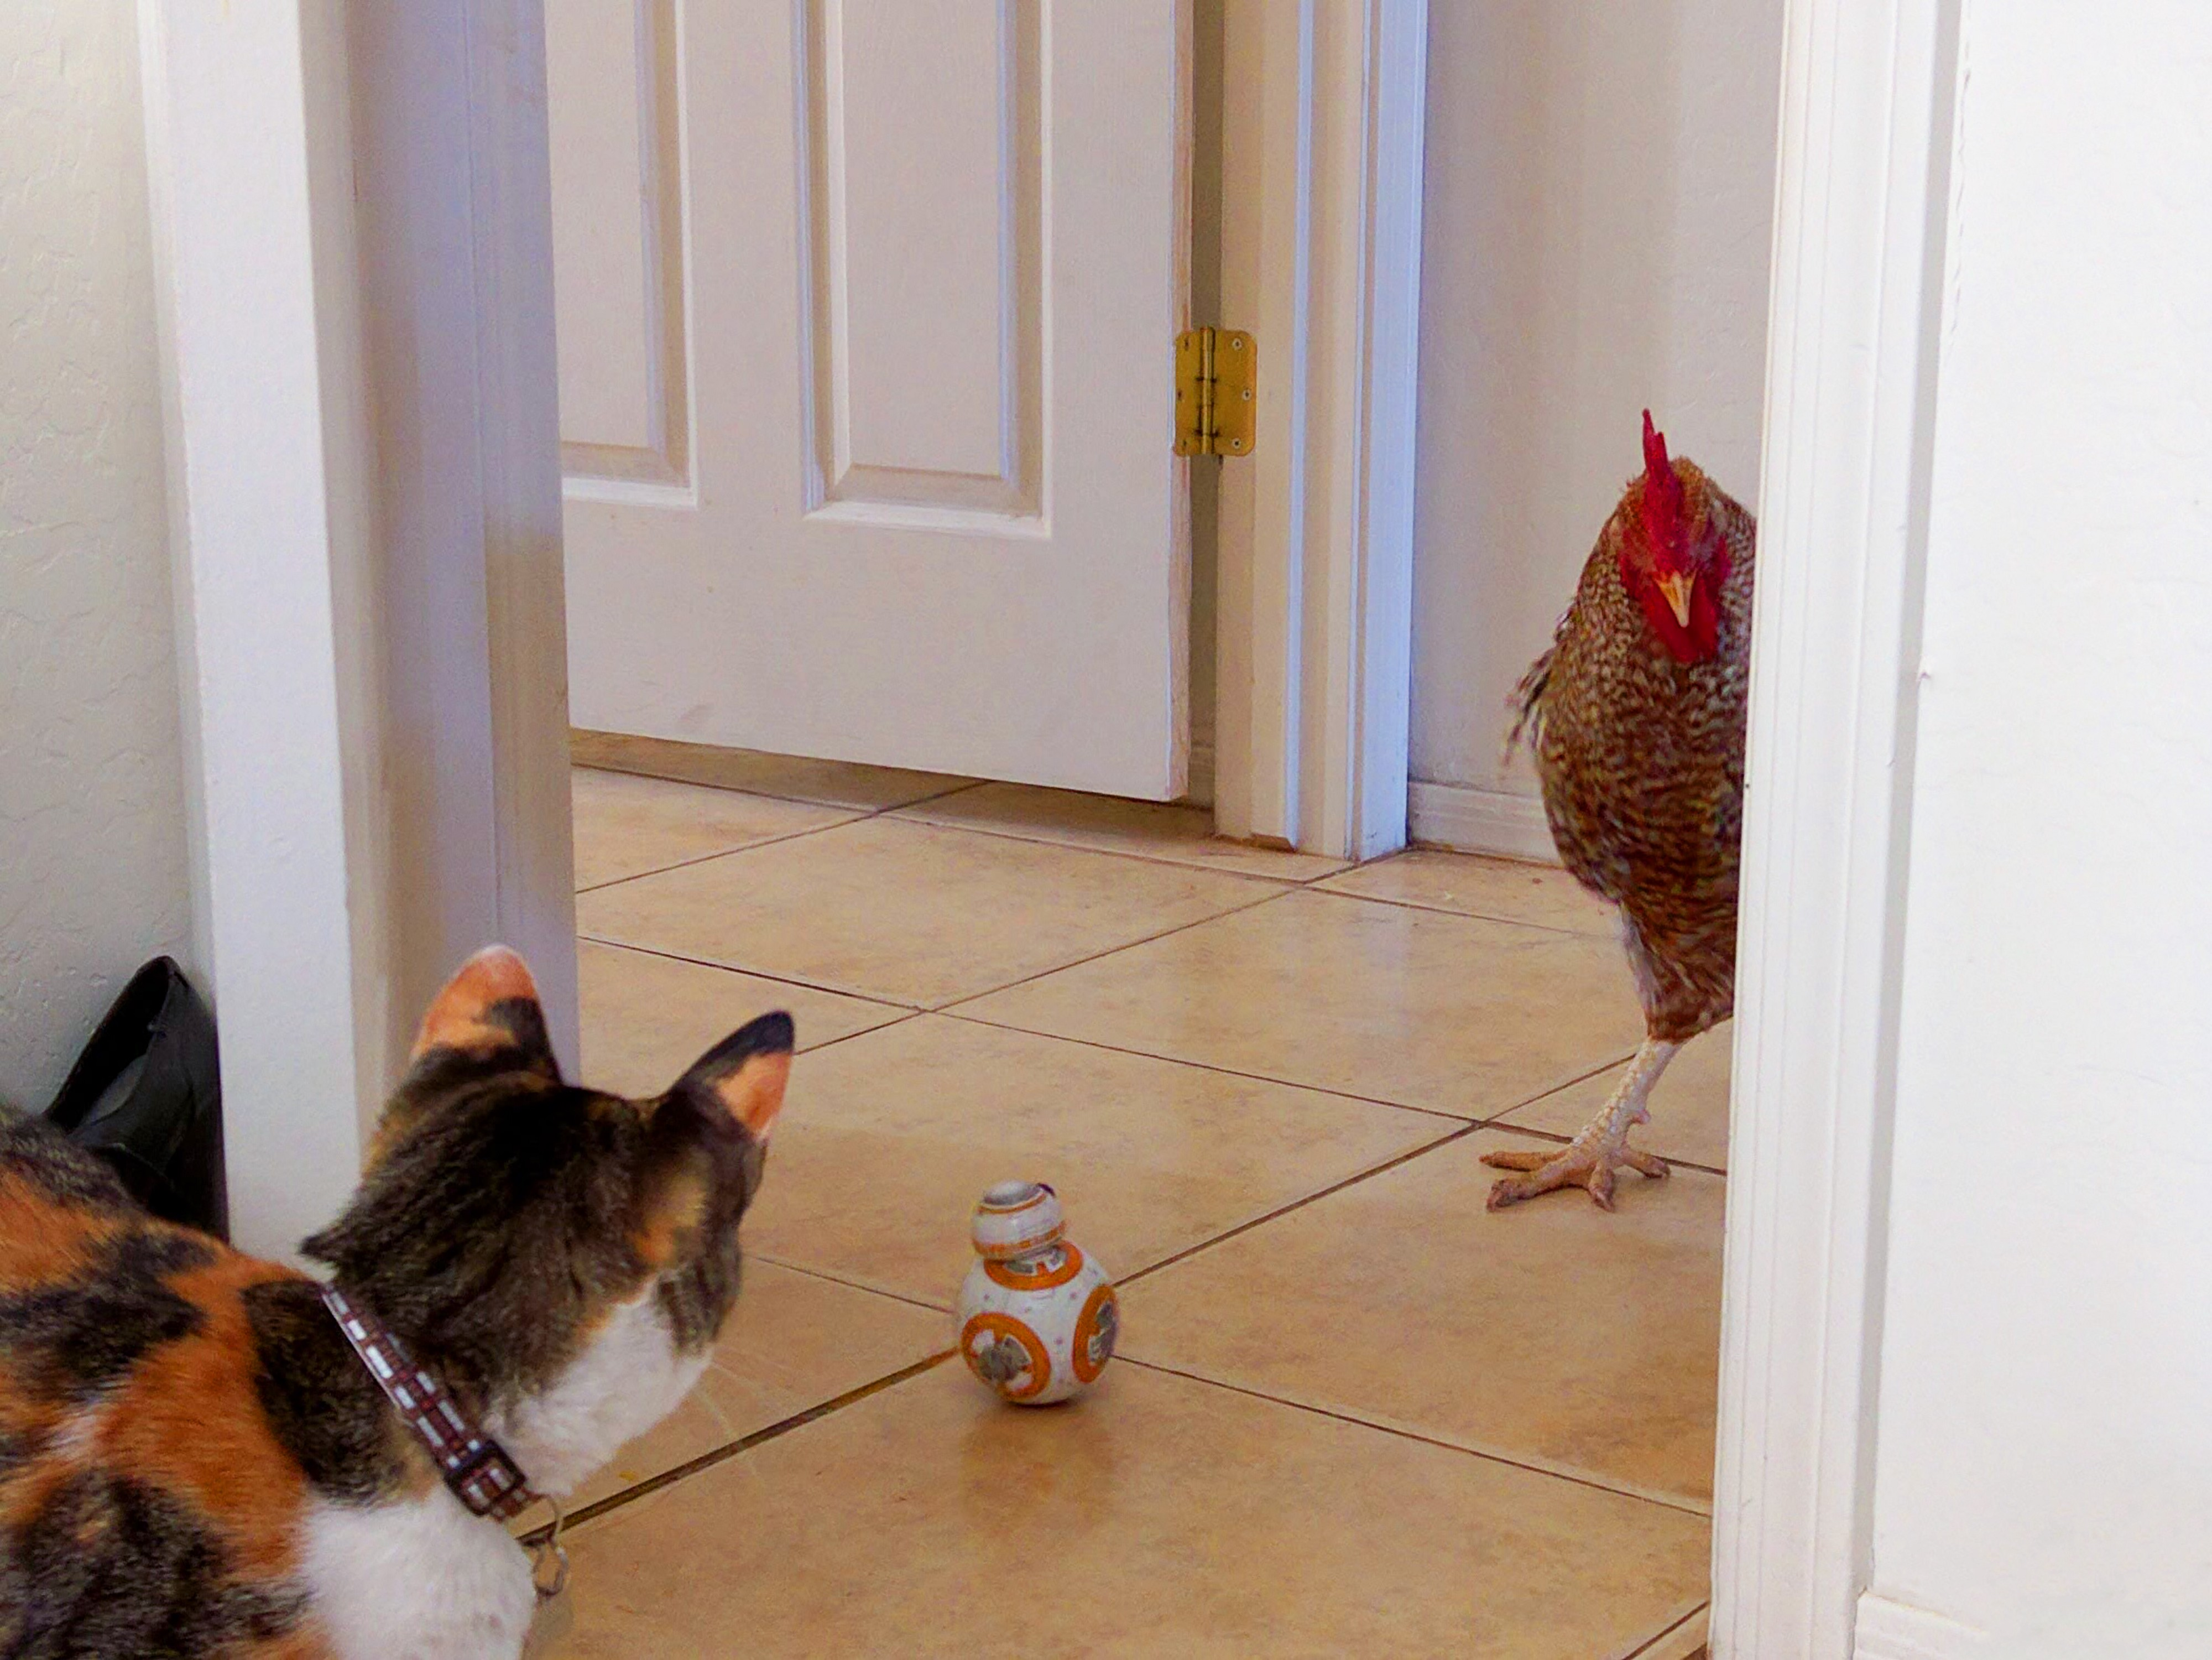 A cat and a chicken in a home, staring at a toy shaped like the tiny robot BB-8 from Star Wars.